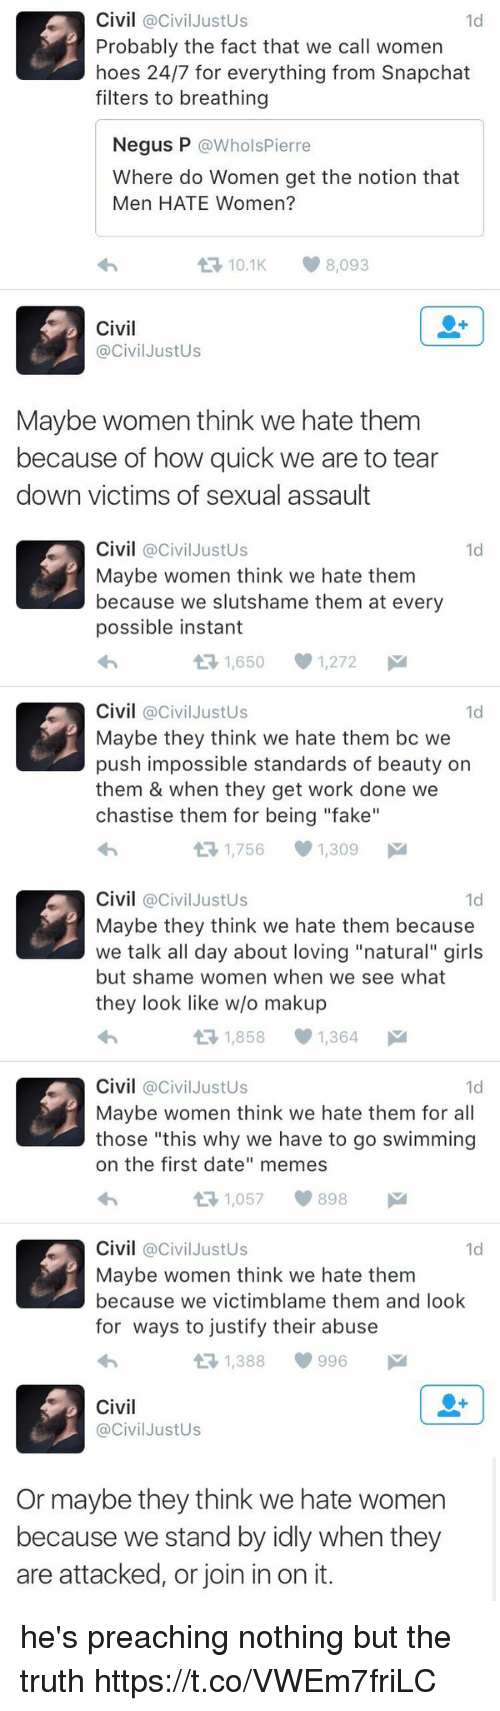 """Fake, Girls, and Hoes: Civil @Civil Justus  1d  Probably the fact that we call women  hoes 24/7 for everything from Snapchat  filters to breathing  Negus P  @Whols Pierre  Where do Women get the notion that  Men HATE Women?  t 10.1 8,093  Civil  @Civil JustUs  Maybe women think we hate them  because of how quick we are to tear  down victims of sexual assault   Civil  @Civil Justus  1d  Maybe women think we hate them  because we slutshame them at every  possible instant  1,650 1,272  M  t Civil  Civil JustUs  1d  Maybe they think we hate them bc we  push impossible standards of beauty on  them & when they get work done we  chastise them for being """"fake""""  1,756 1,309  M   Civil  @Civil Justus  1d  Maybe they think we hate them because  we talk all day about loving """"natural"""" girls  but shame women when we see what  they look like w/o makup  1,858 1,364  M  t Civil  @Civil Justus  1d  Maybe women think we hate them for all  those """"this why we have to go swimming  on the first date"""" memes  1,057 898  M  t Civil  @Civil Justus  1d  Maybe women think we hate them  because we victimblame them and look  for ways to justify their abuse  t 1,388 996   Civil  Civil JustUs  Or maybe they think we hate women  because we stand by idly when they  are attacked, or join in on it. he's preaching nothing but the truth https://t.co/VWEm7friLC"""